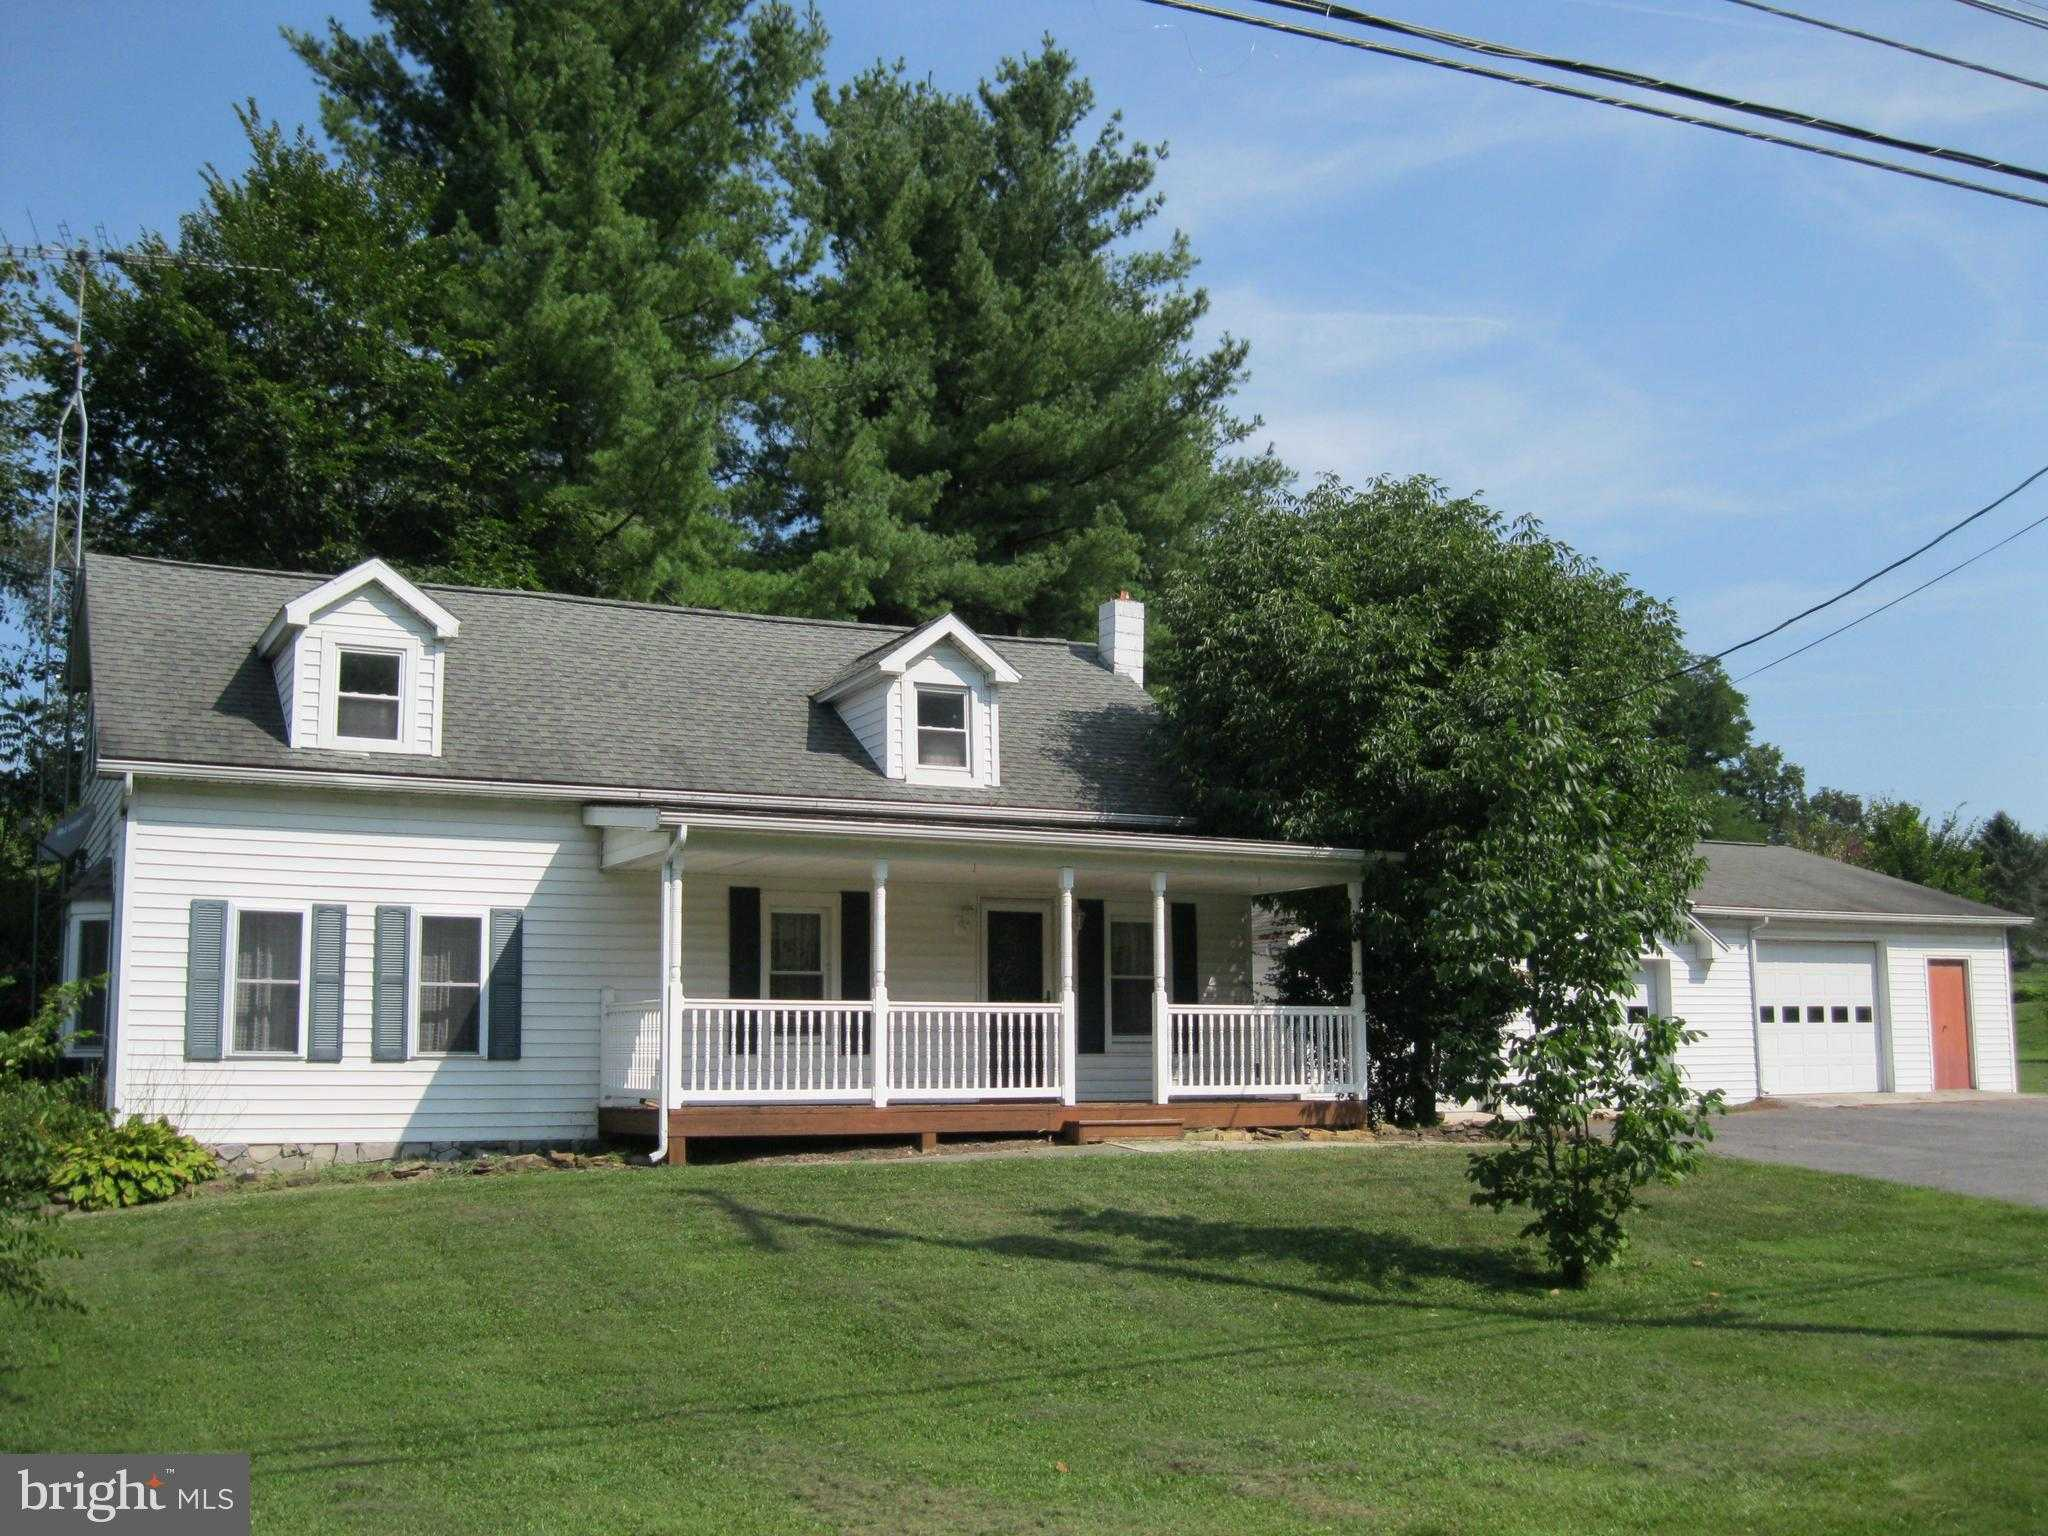 $189,900 - 4Br/1Ba -  for Sale in None Available, Biglerville